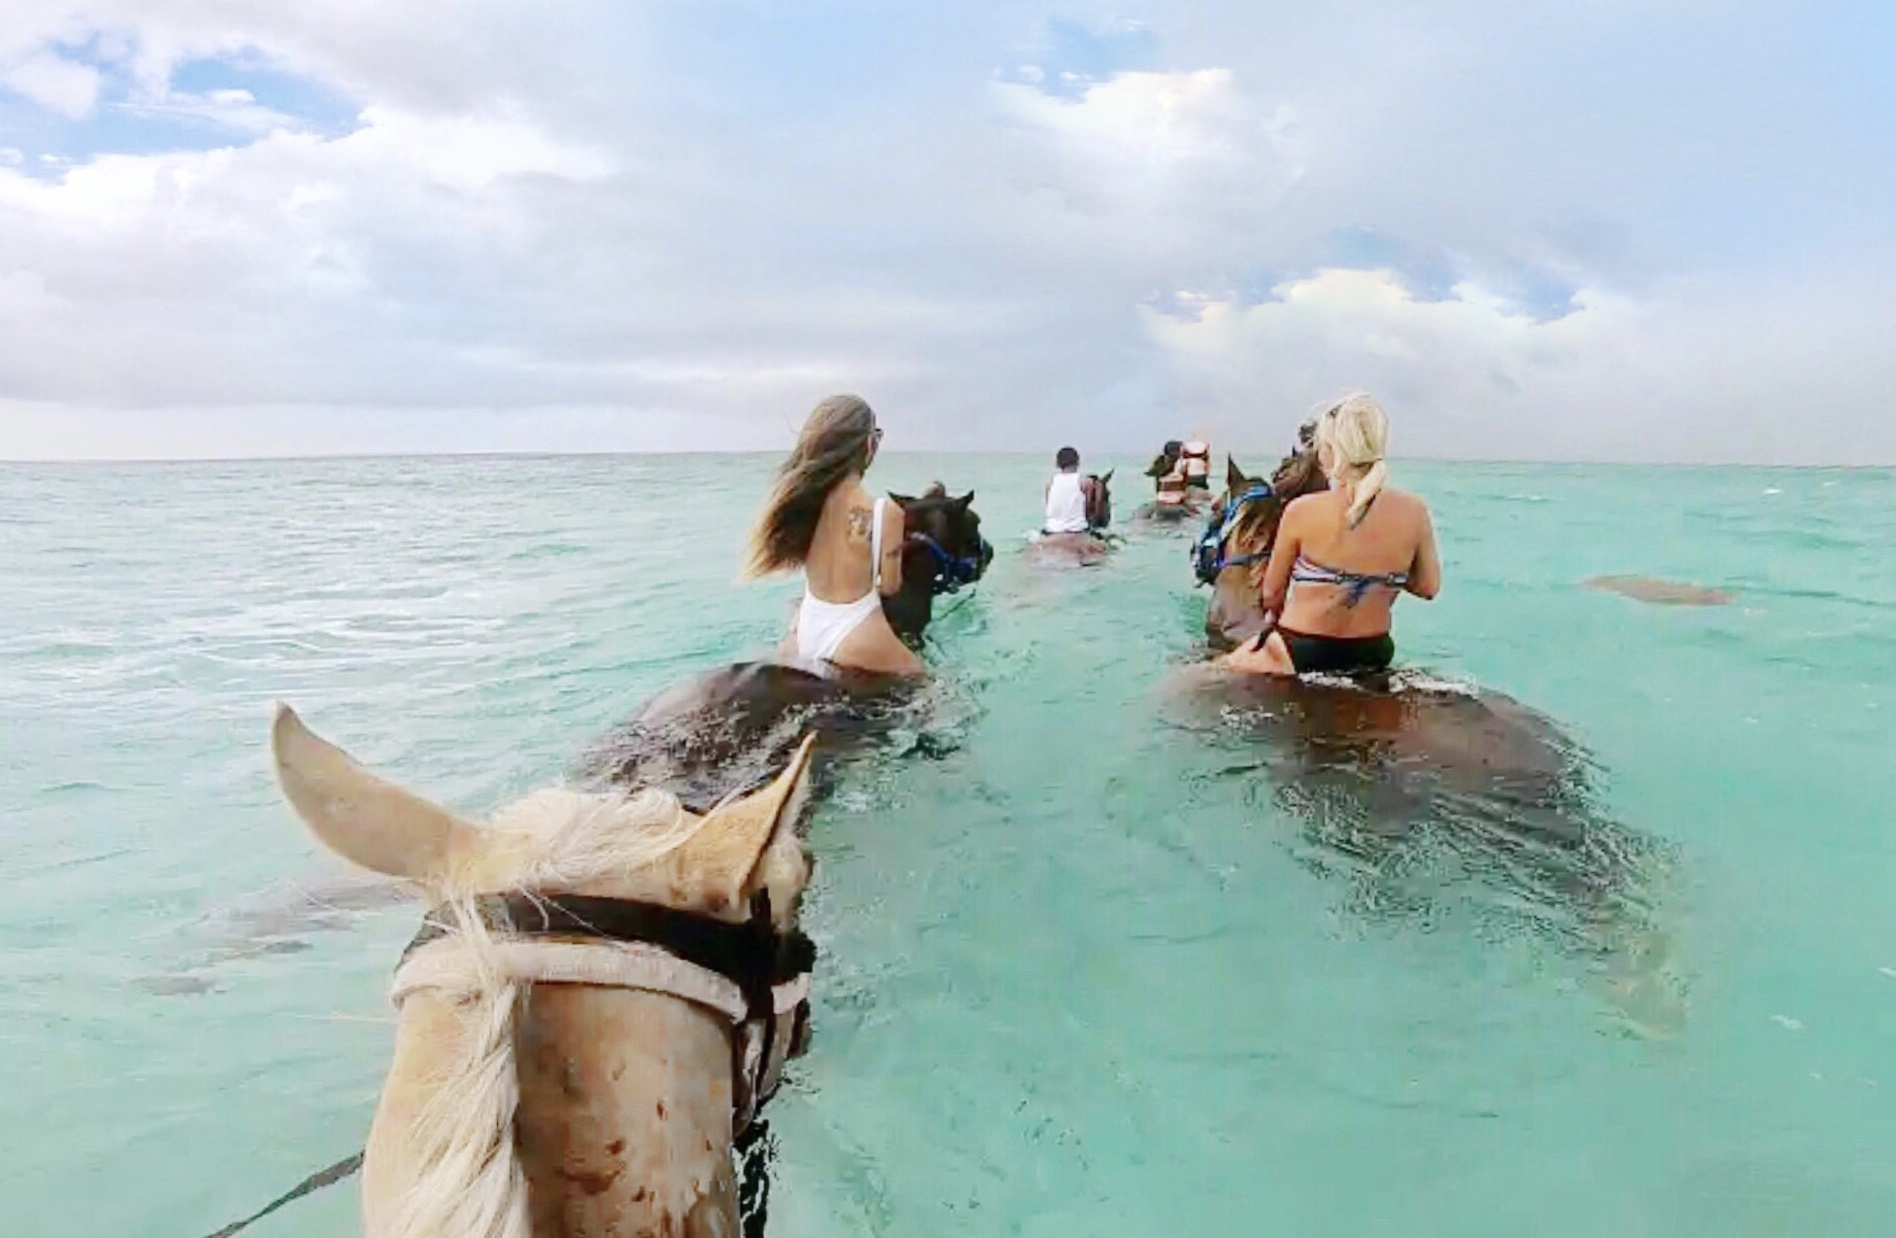 grand cayman excursions, swim with ponies in grand cayman, cayman islands, adventures in grand cayman